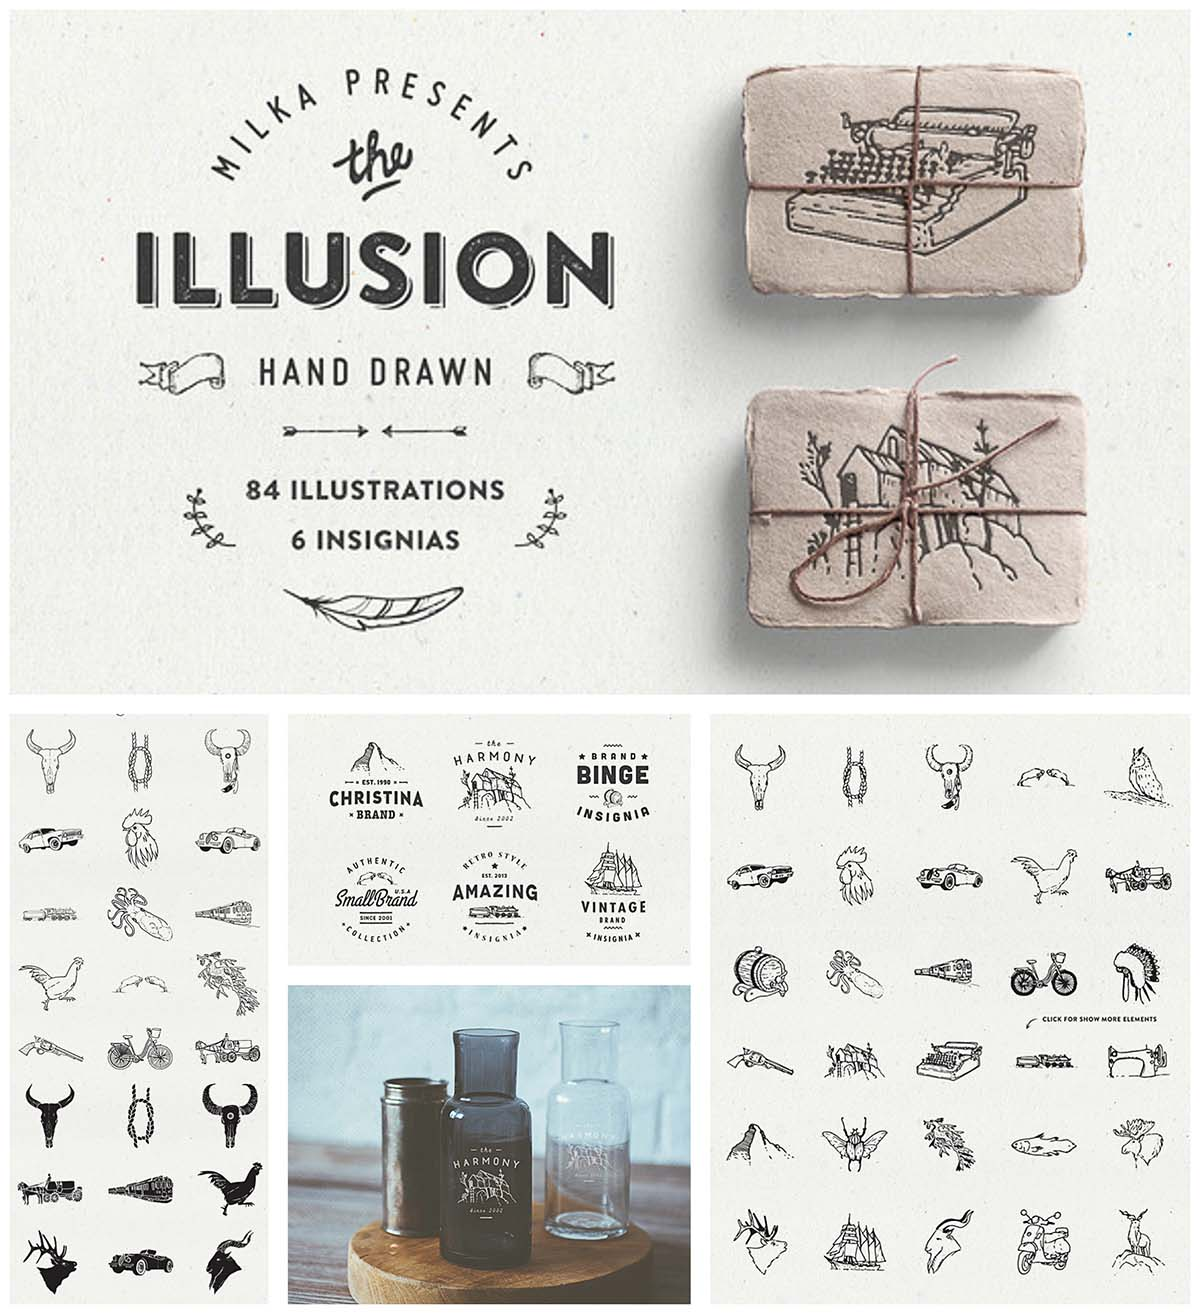 Illusion retro hand drawn set